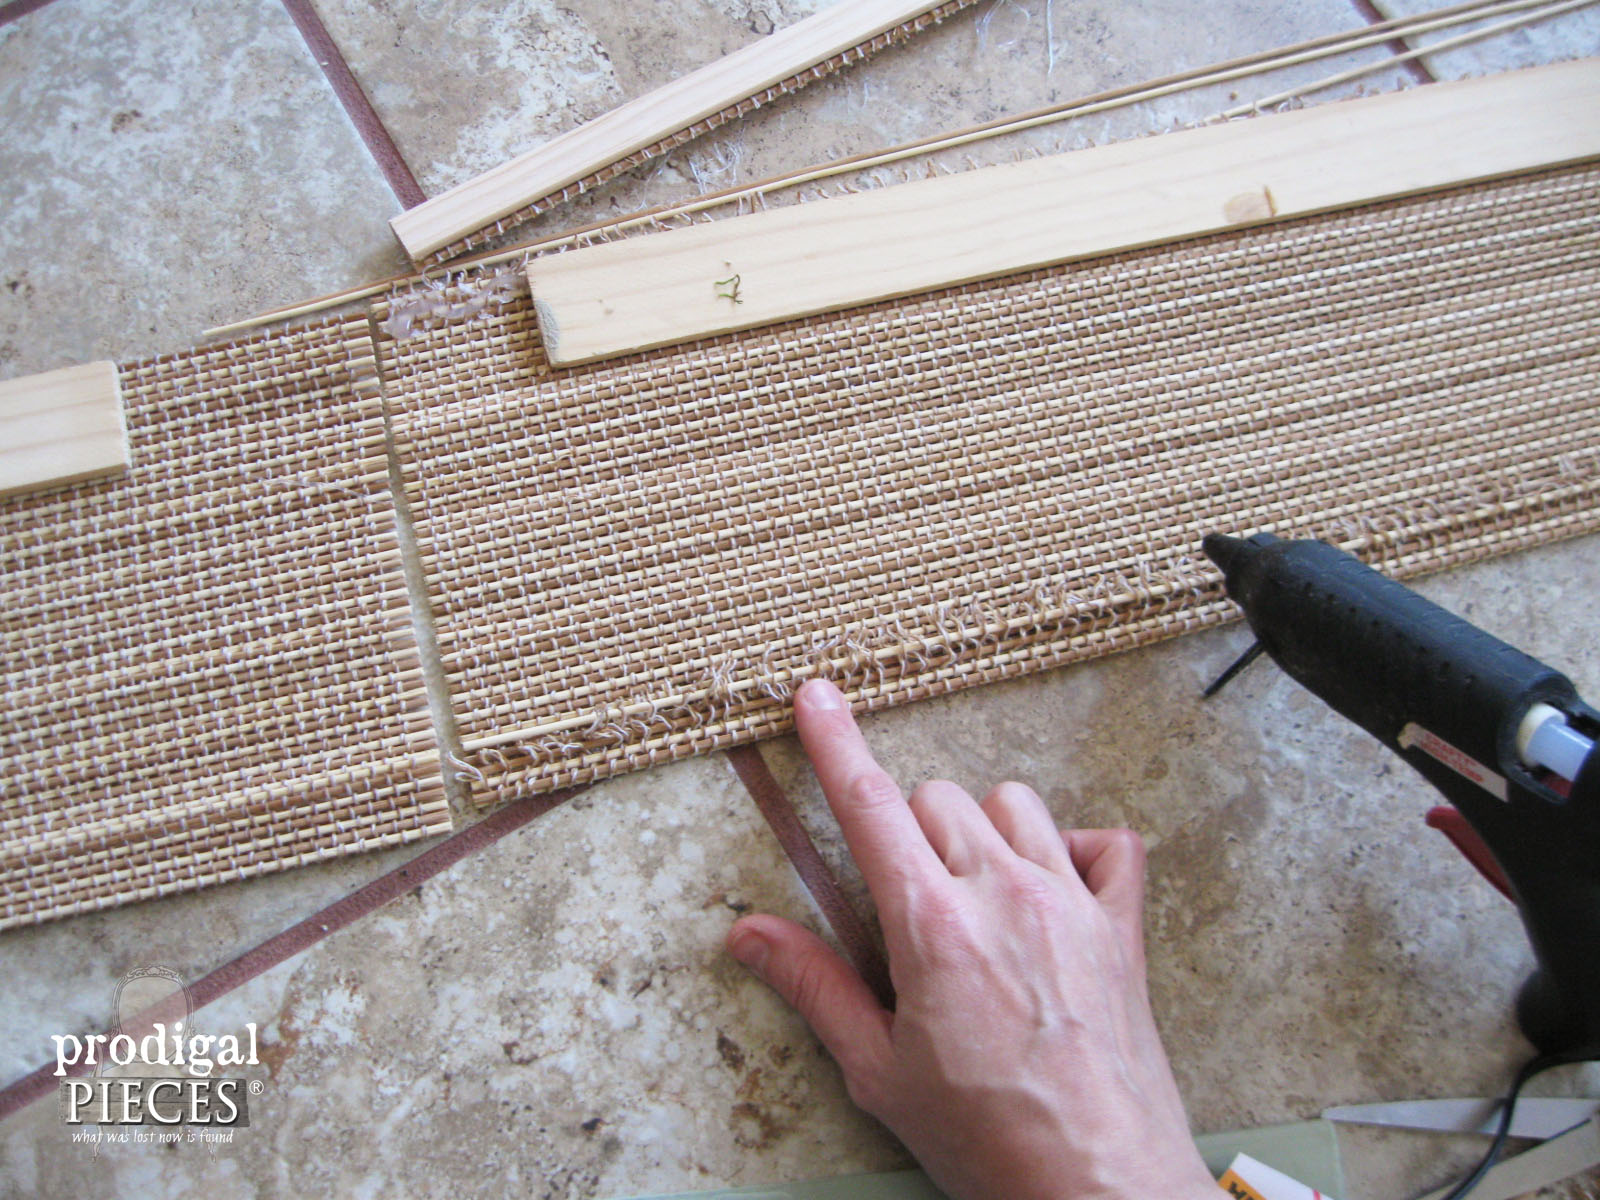 Assembling Bamboo Valance | Prodigal Pieces | www.prodigalpieces.com